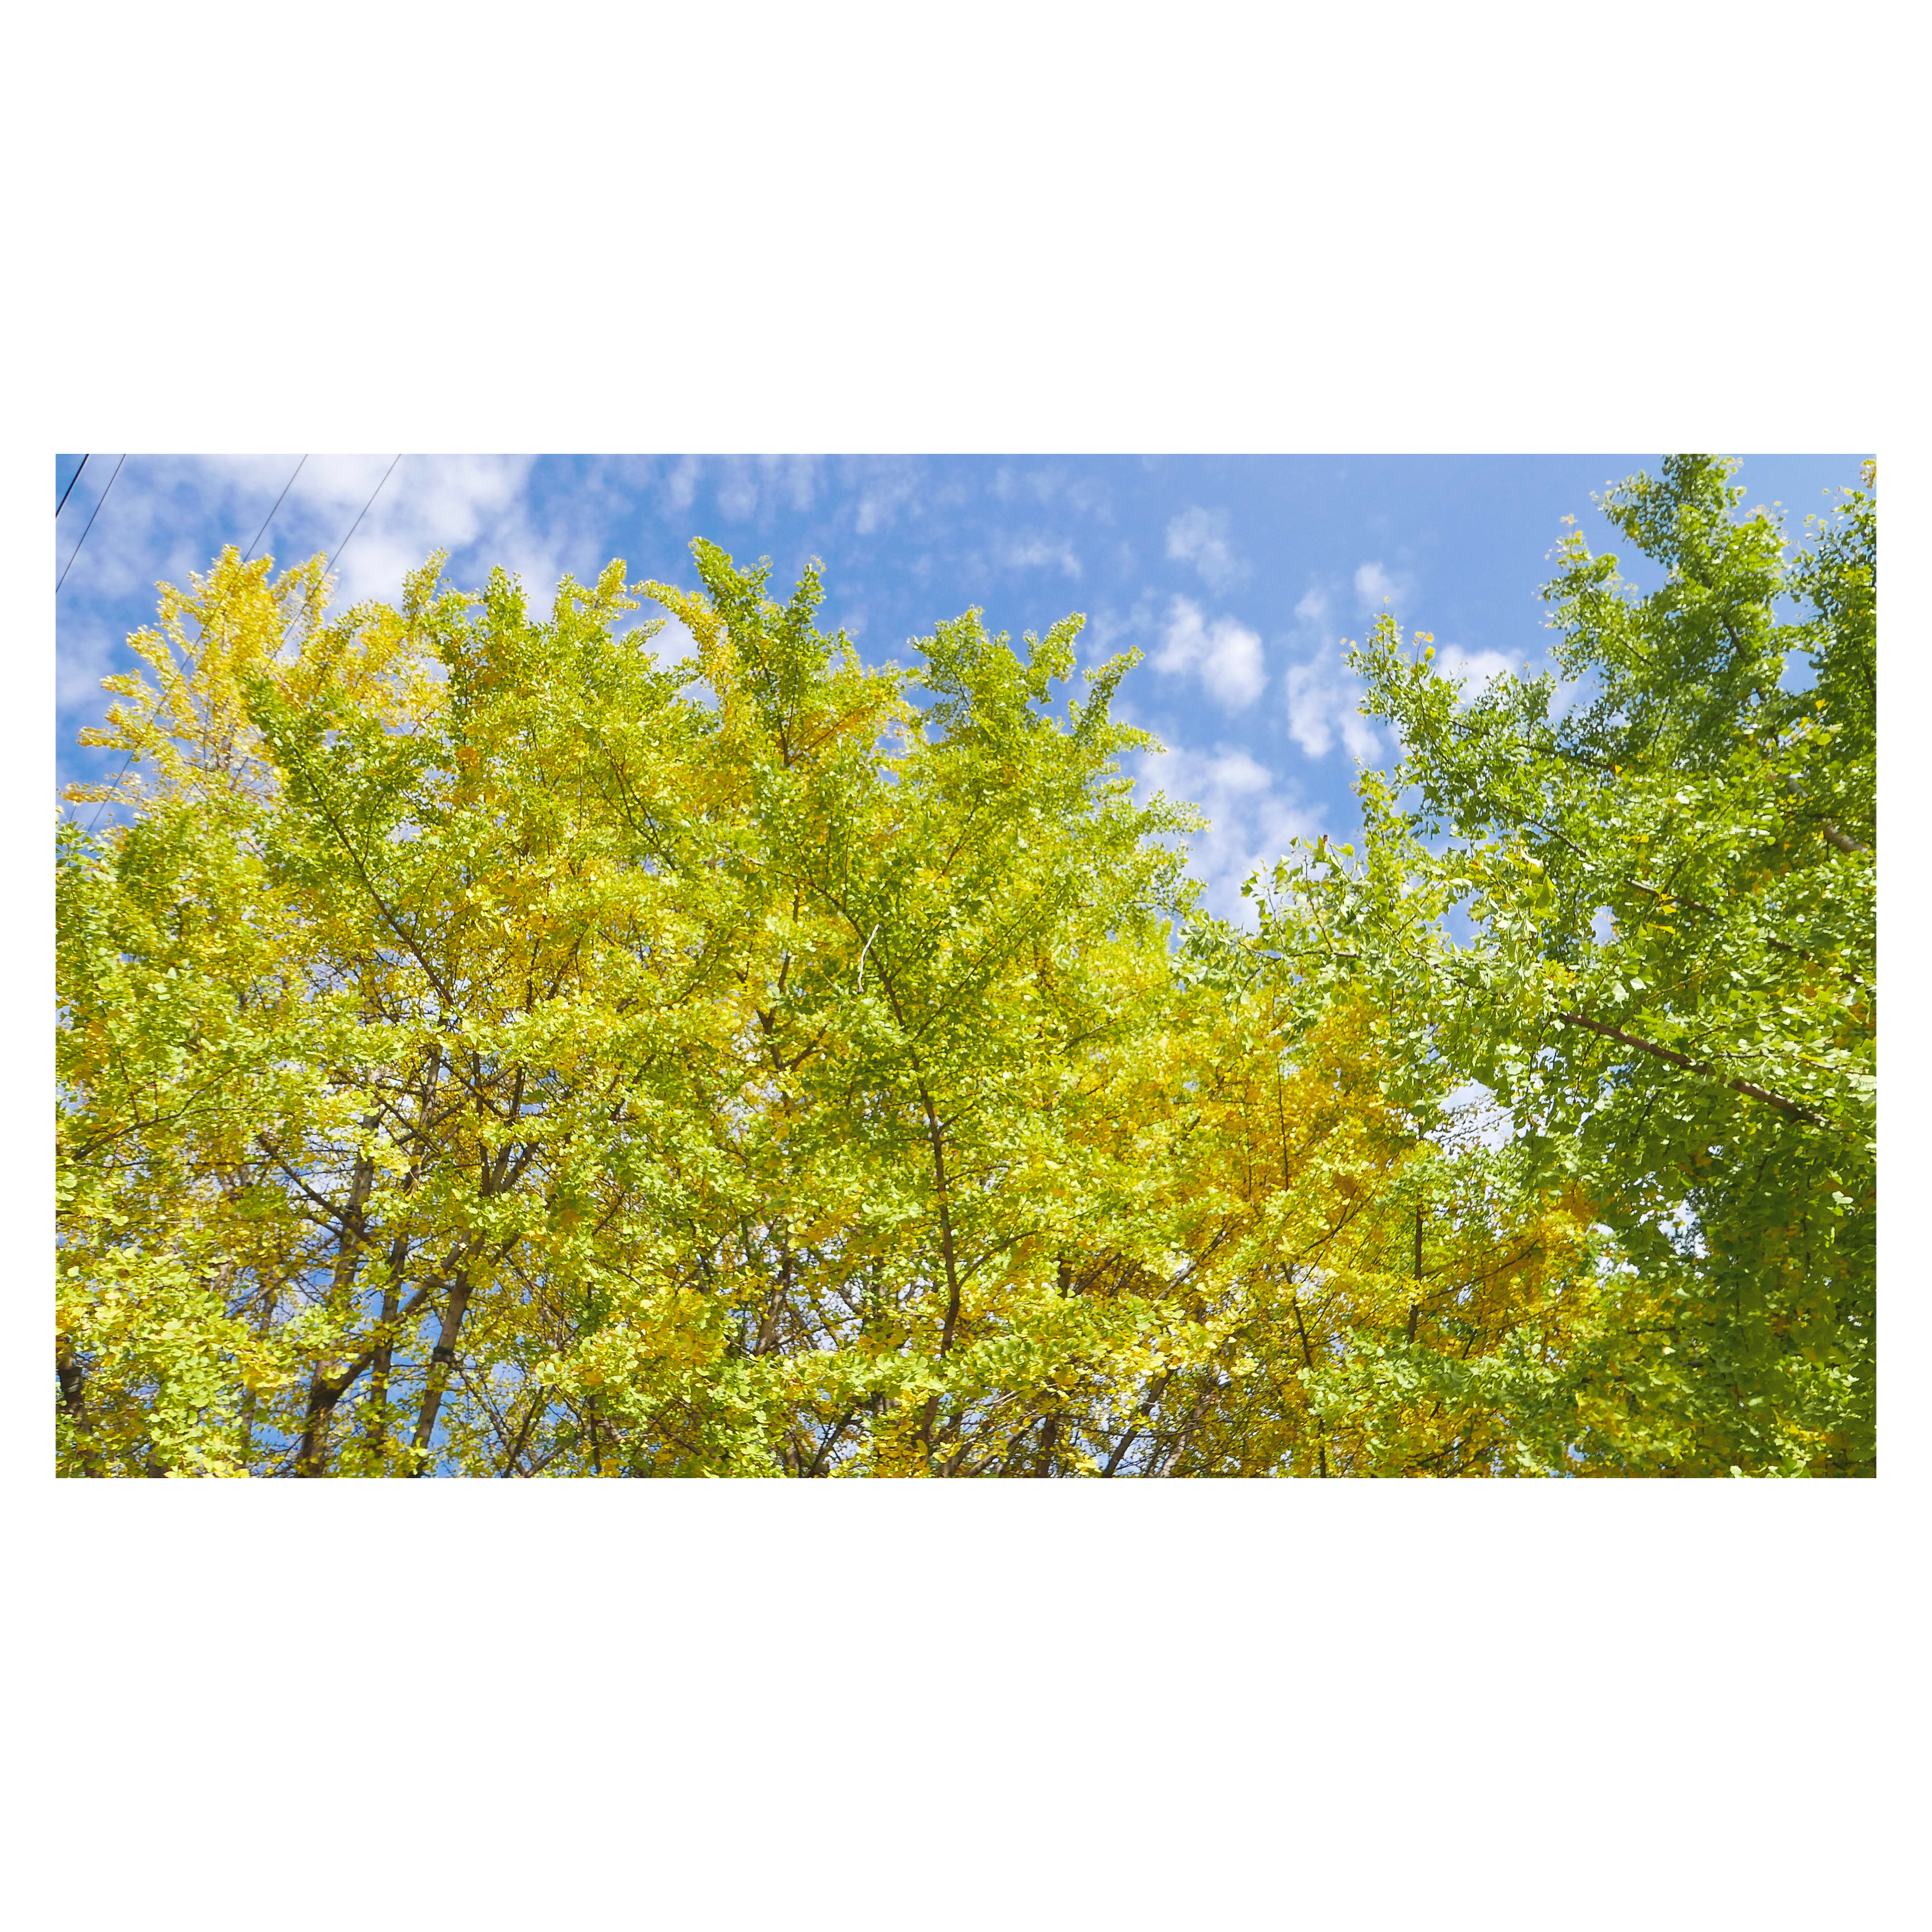 auto post production filter, transfer print, tree, growth, blue, sky, green color, low angle view, green, yellow, cloud, nature, beauty in nature, day, field, tranquility, scenics, tranquil scene, outdoors, growing, lush foliage, cloud - sky, treetop, no people, high section, greenery, flowering